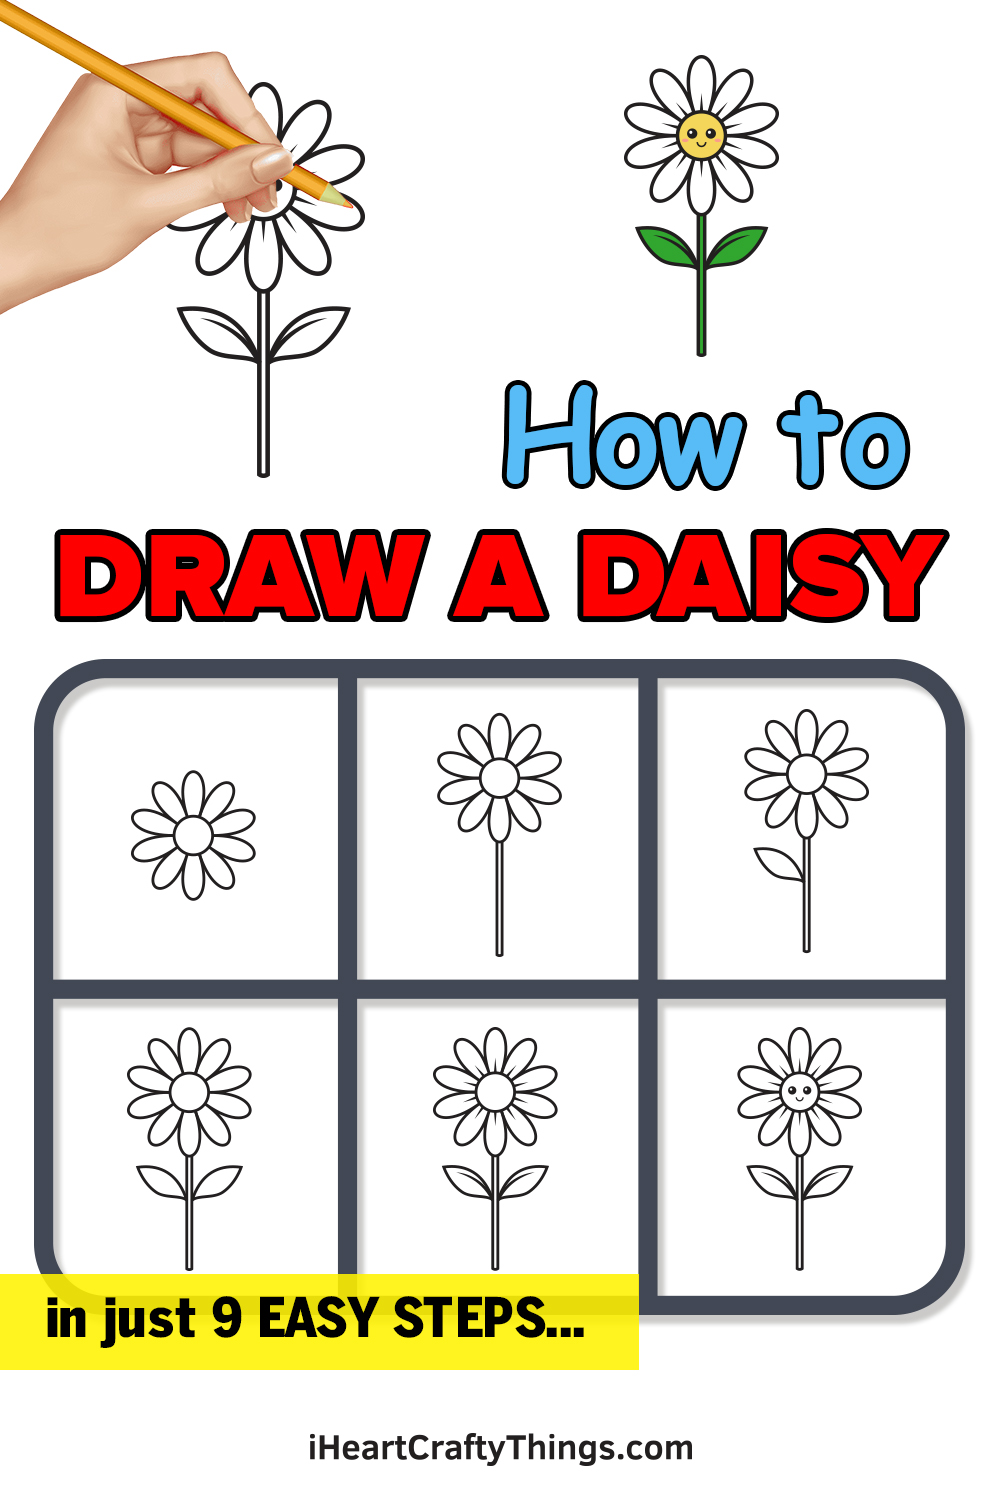 how to draw a daisy in 9 easy steps